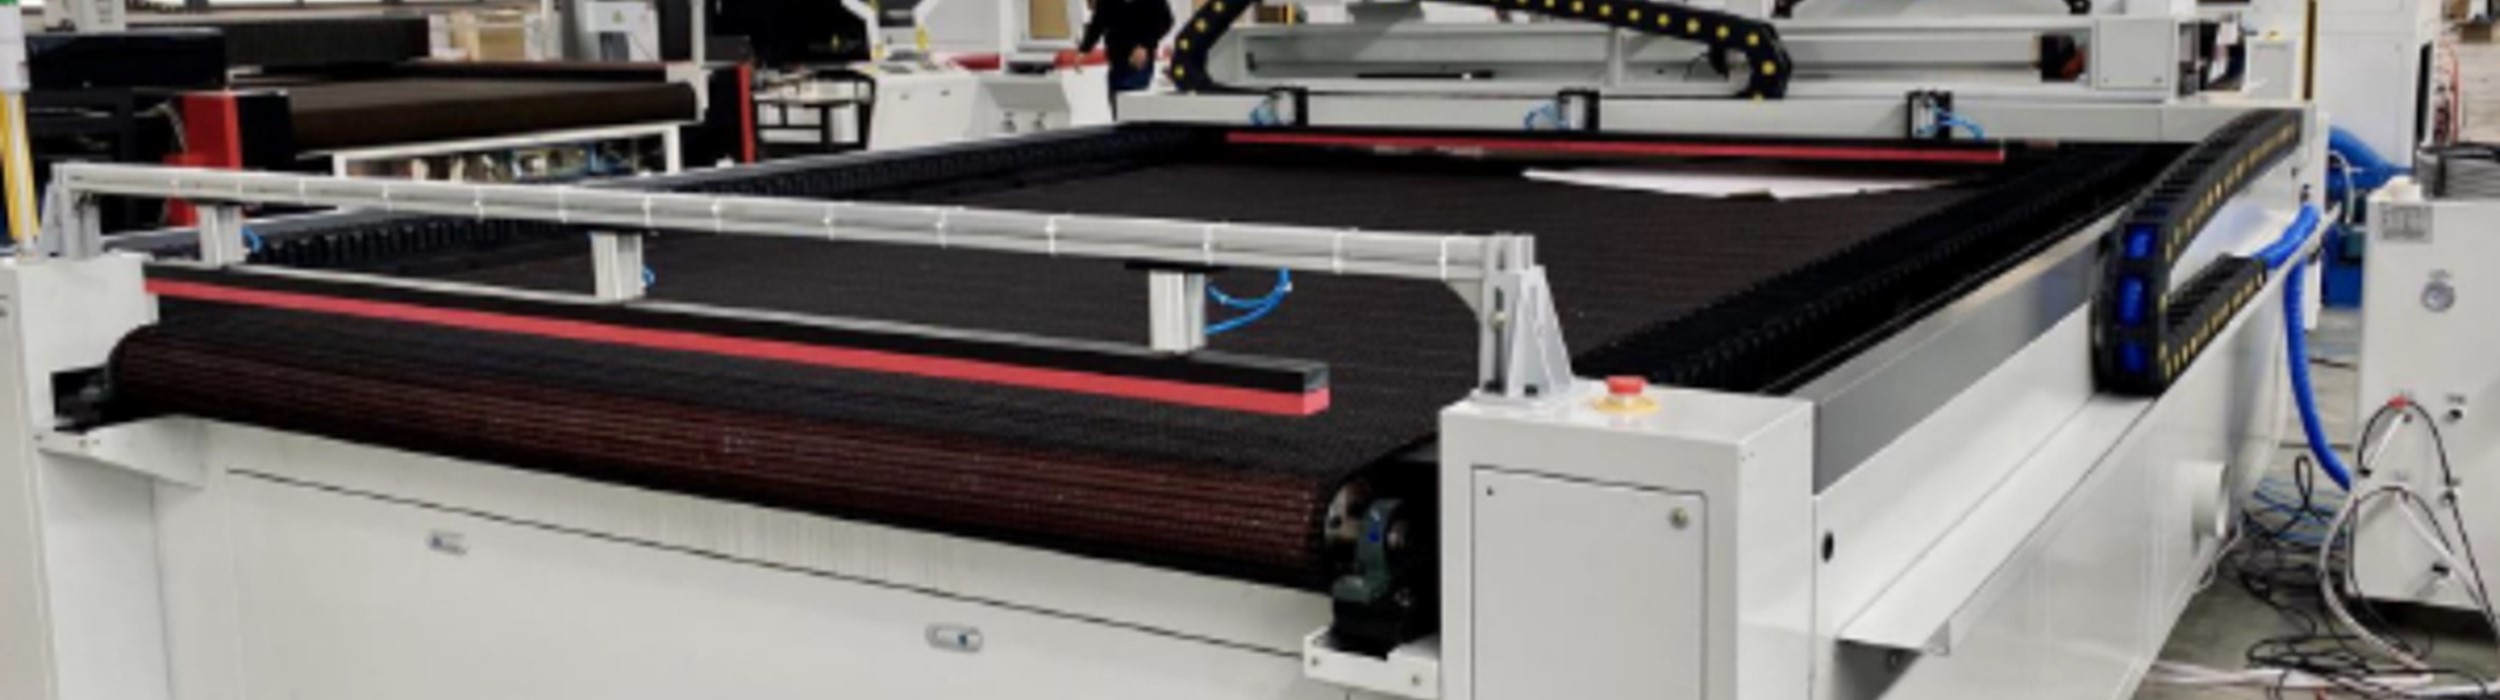 Laser & digital cutting systems